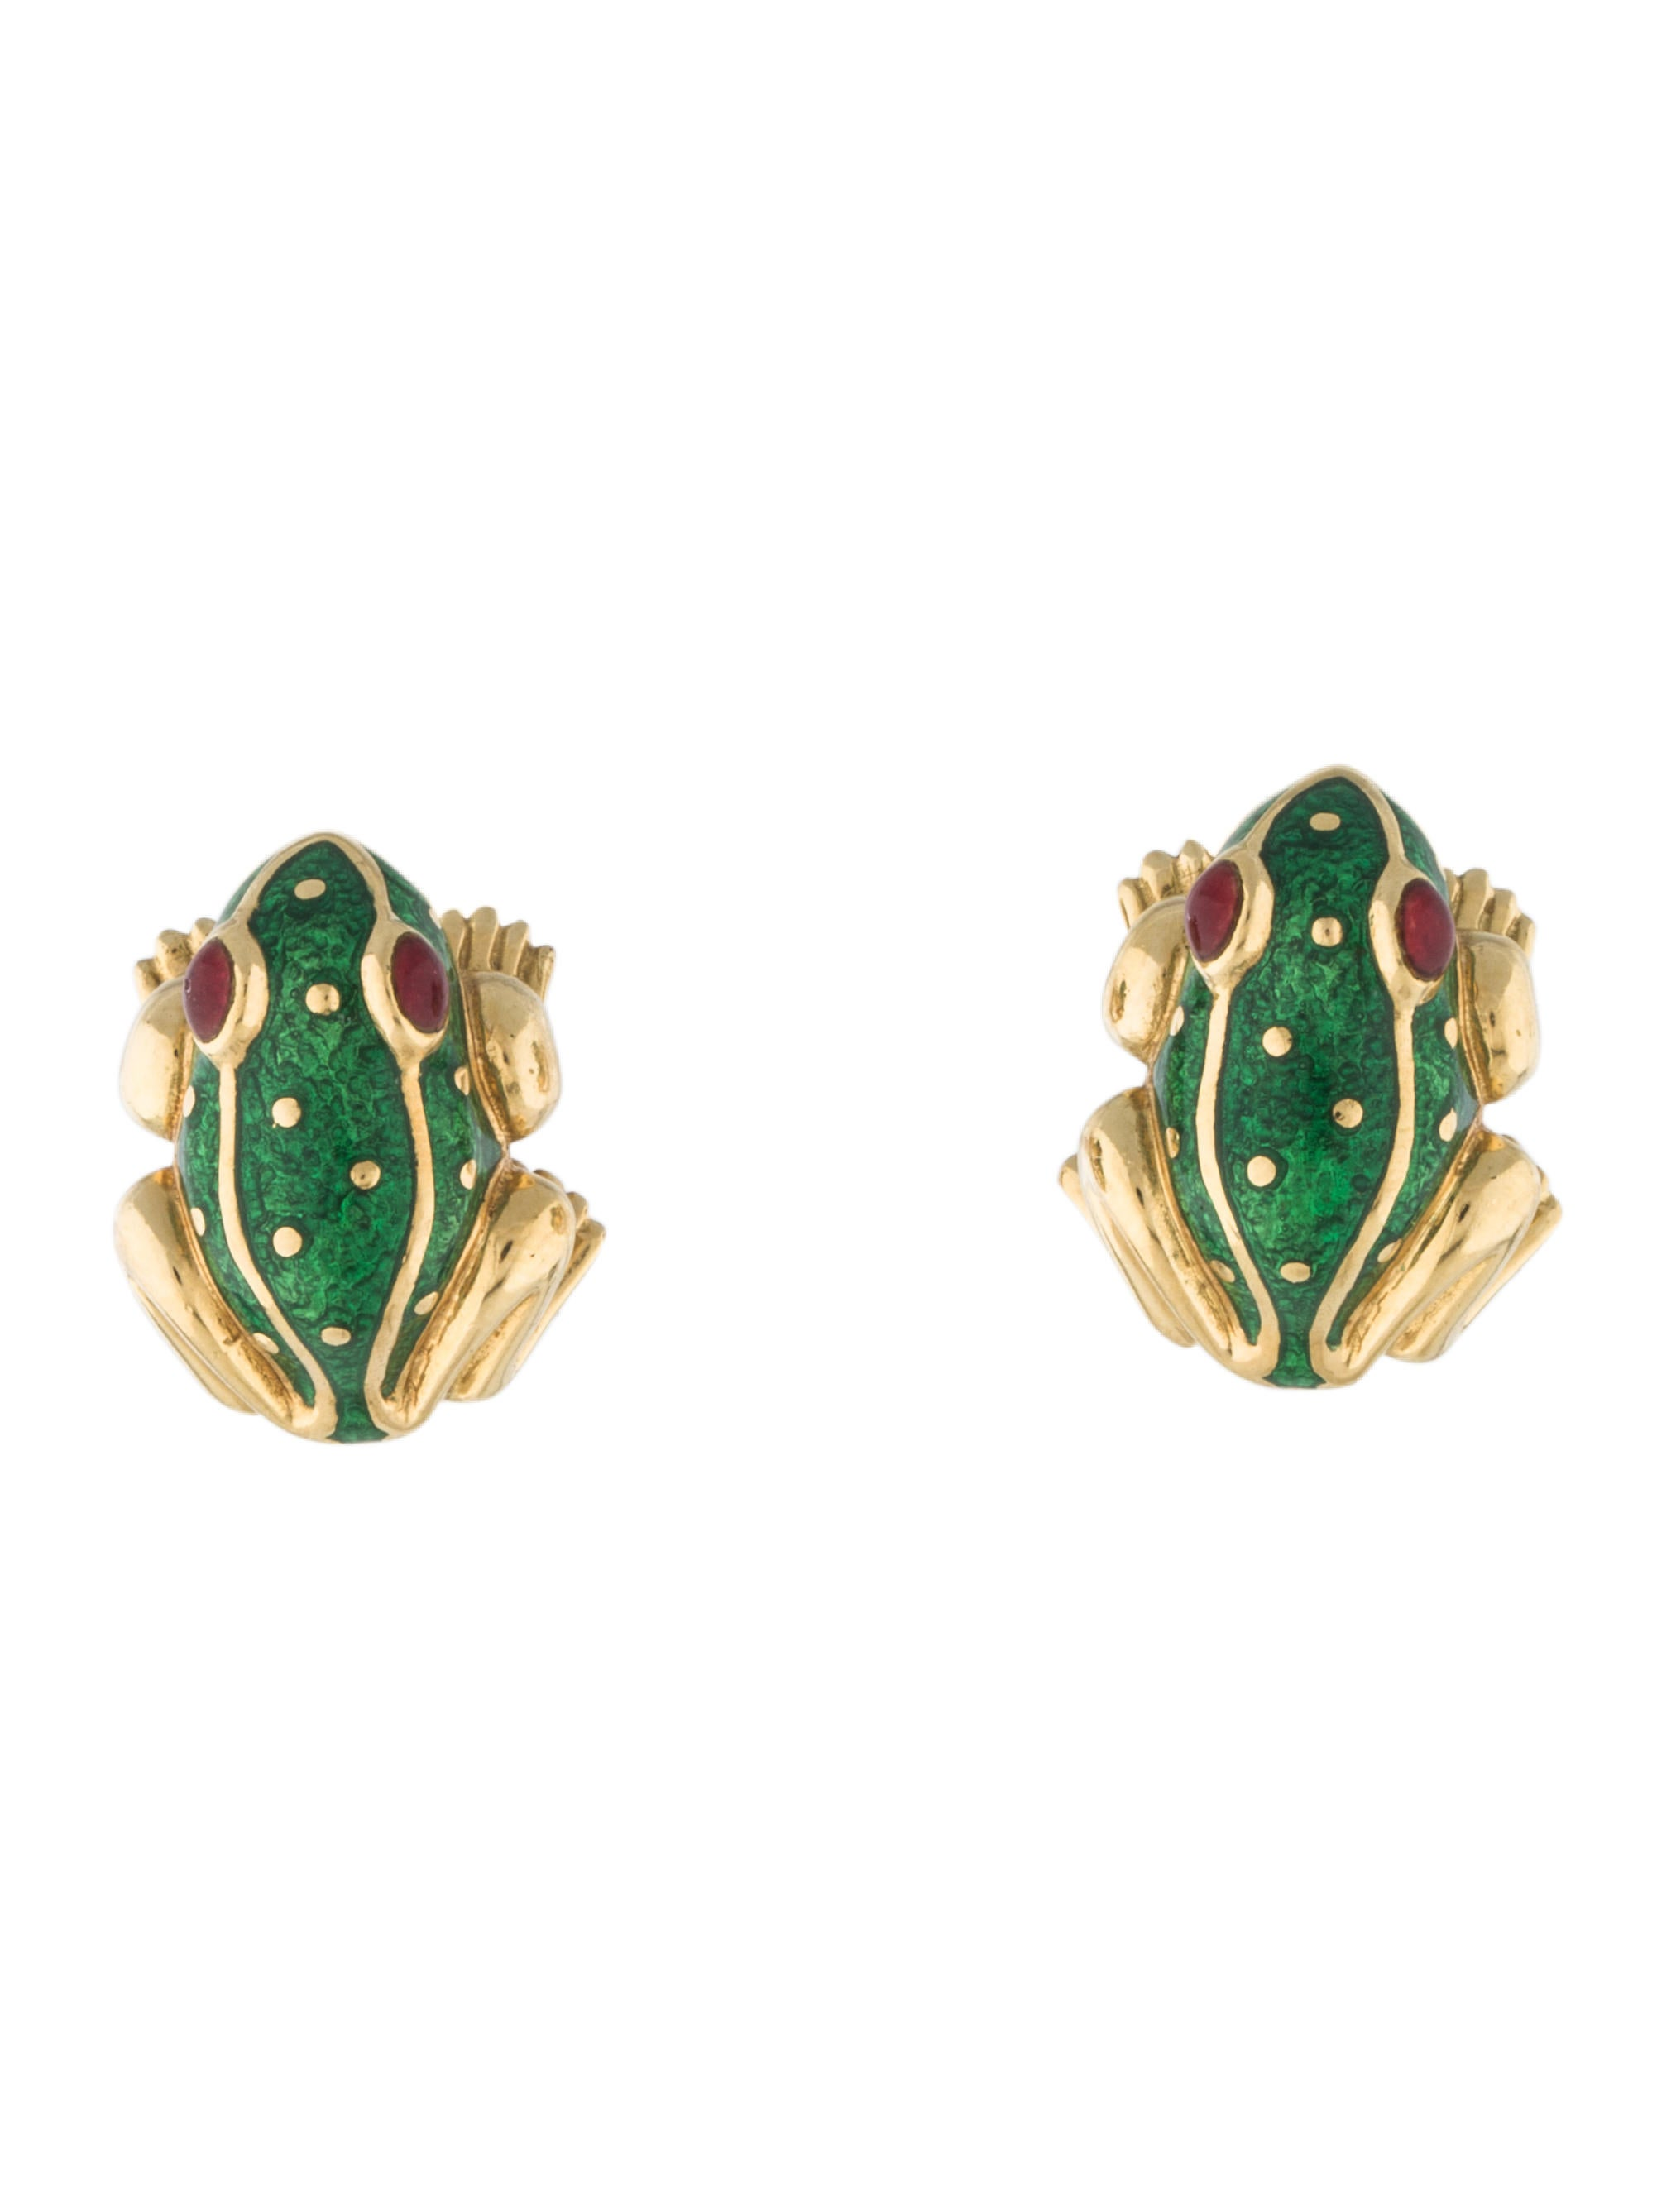 tenenbaum jewelers david product earrings gemstone ring jewelersdavid webb